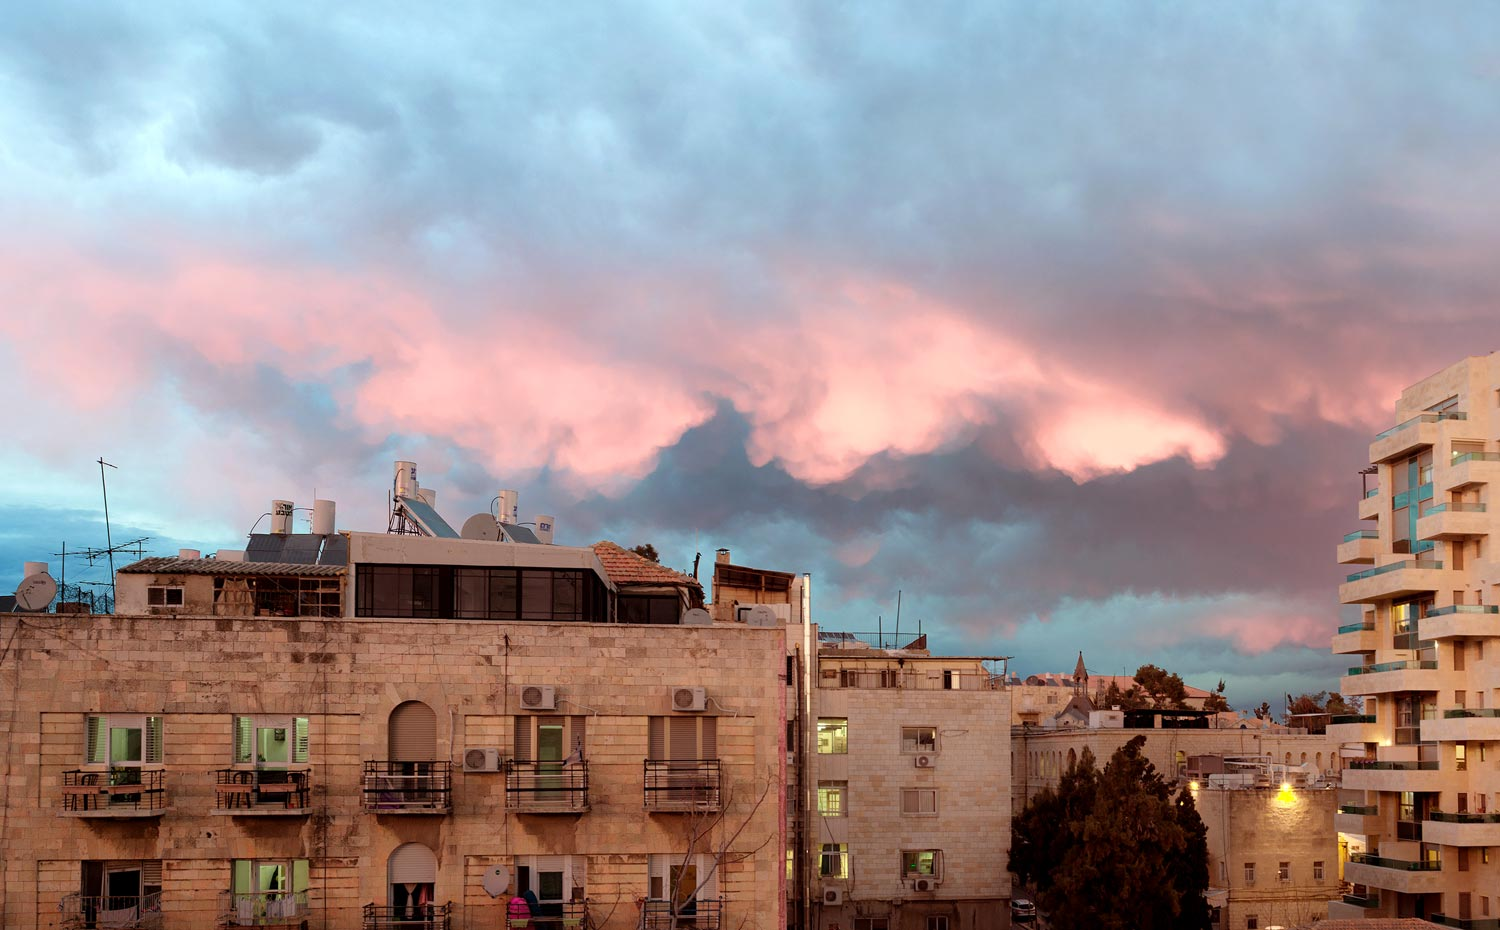 Colorful and interesting clouds from the balcony of our Air BnB flat